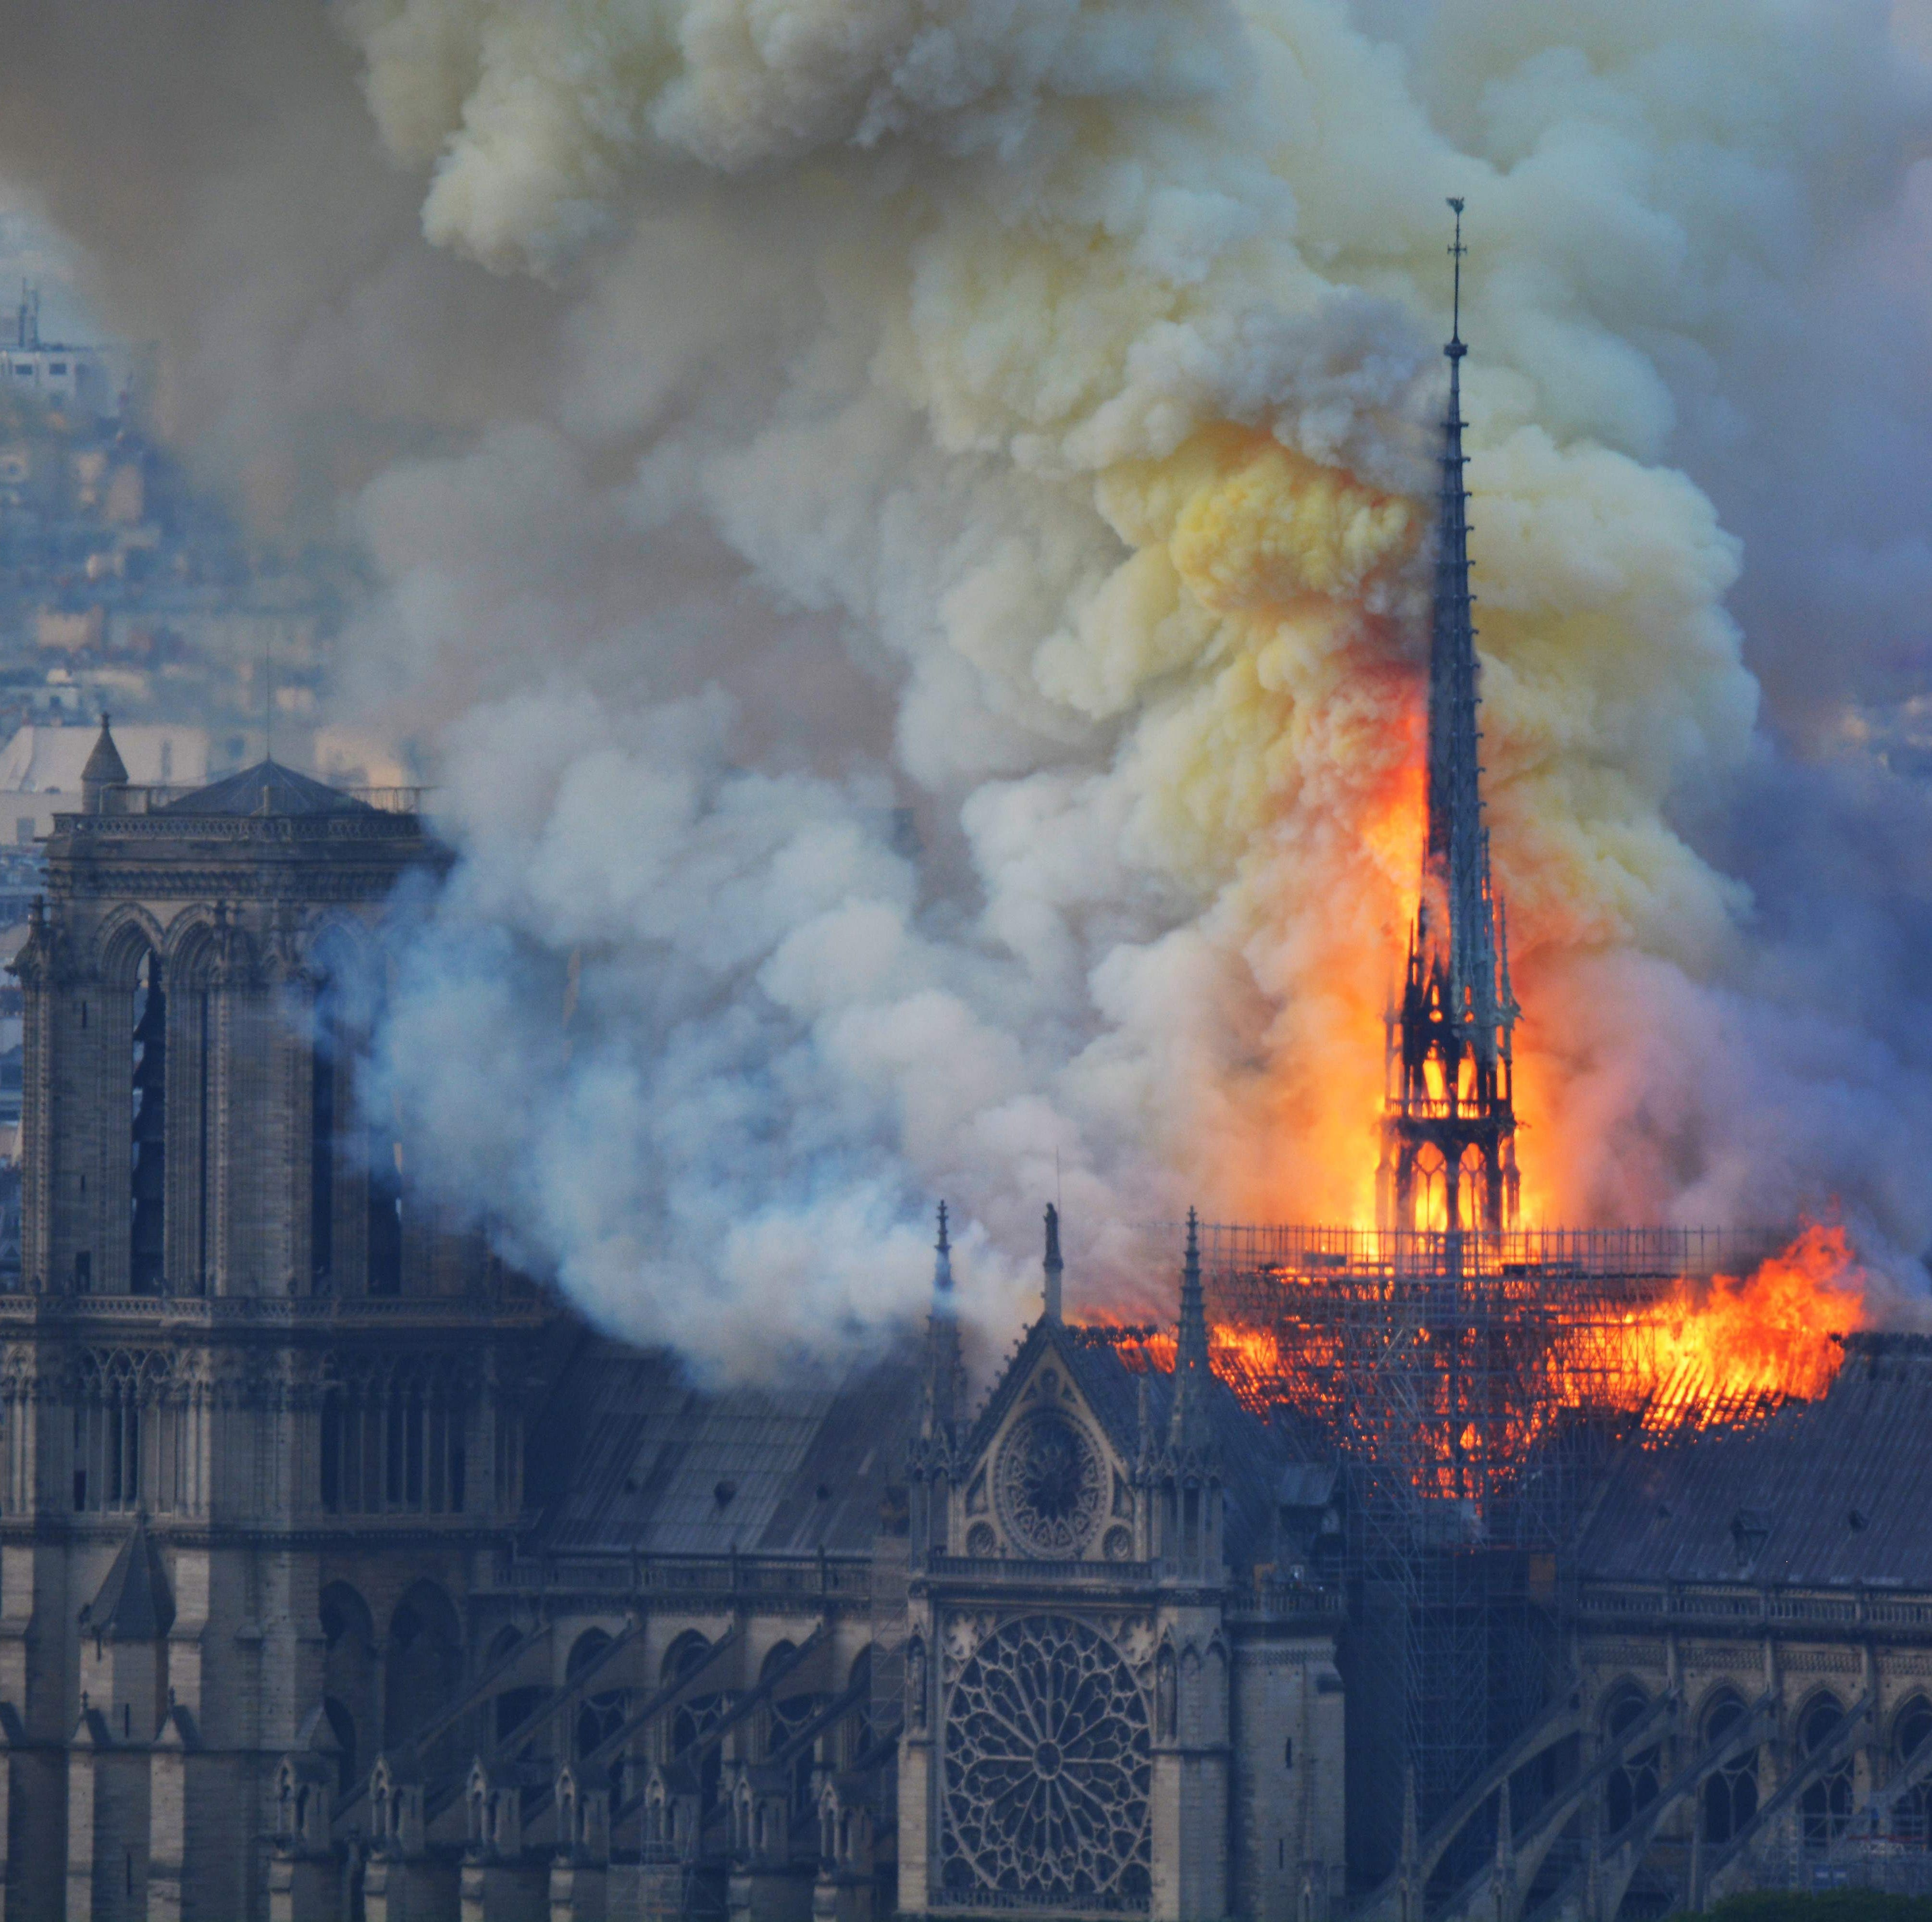 After tragic Notre Dame fire came ugly empathy shaming on social media